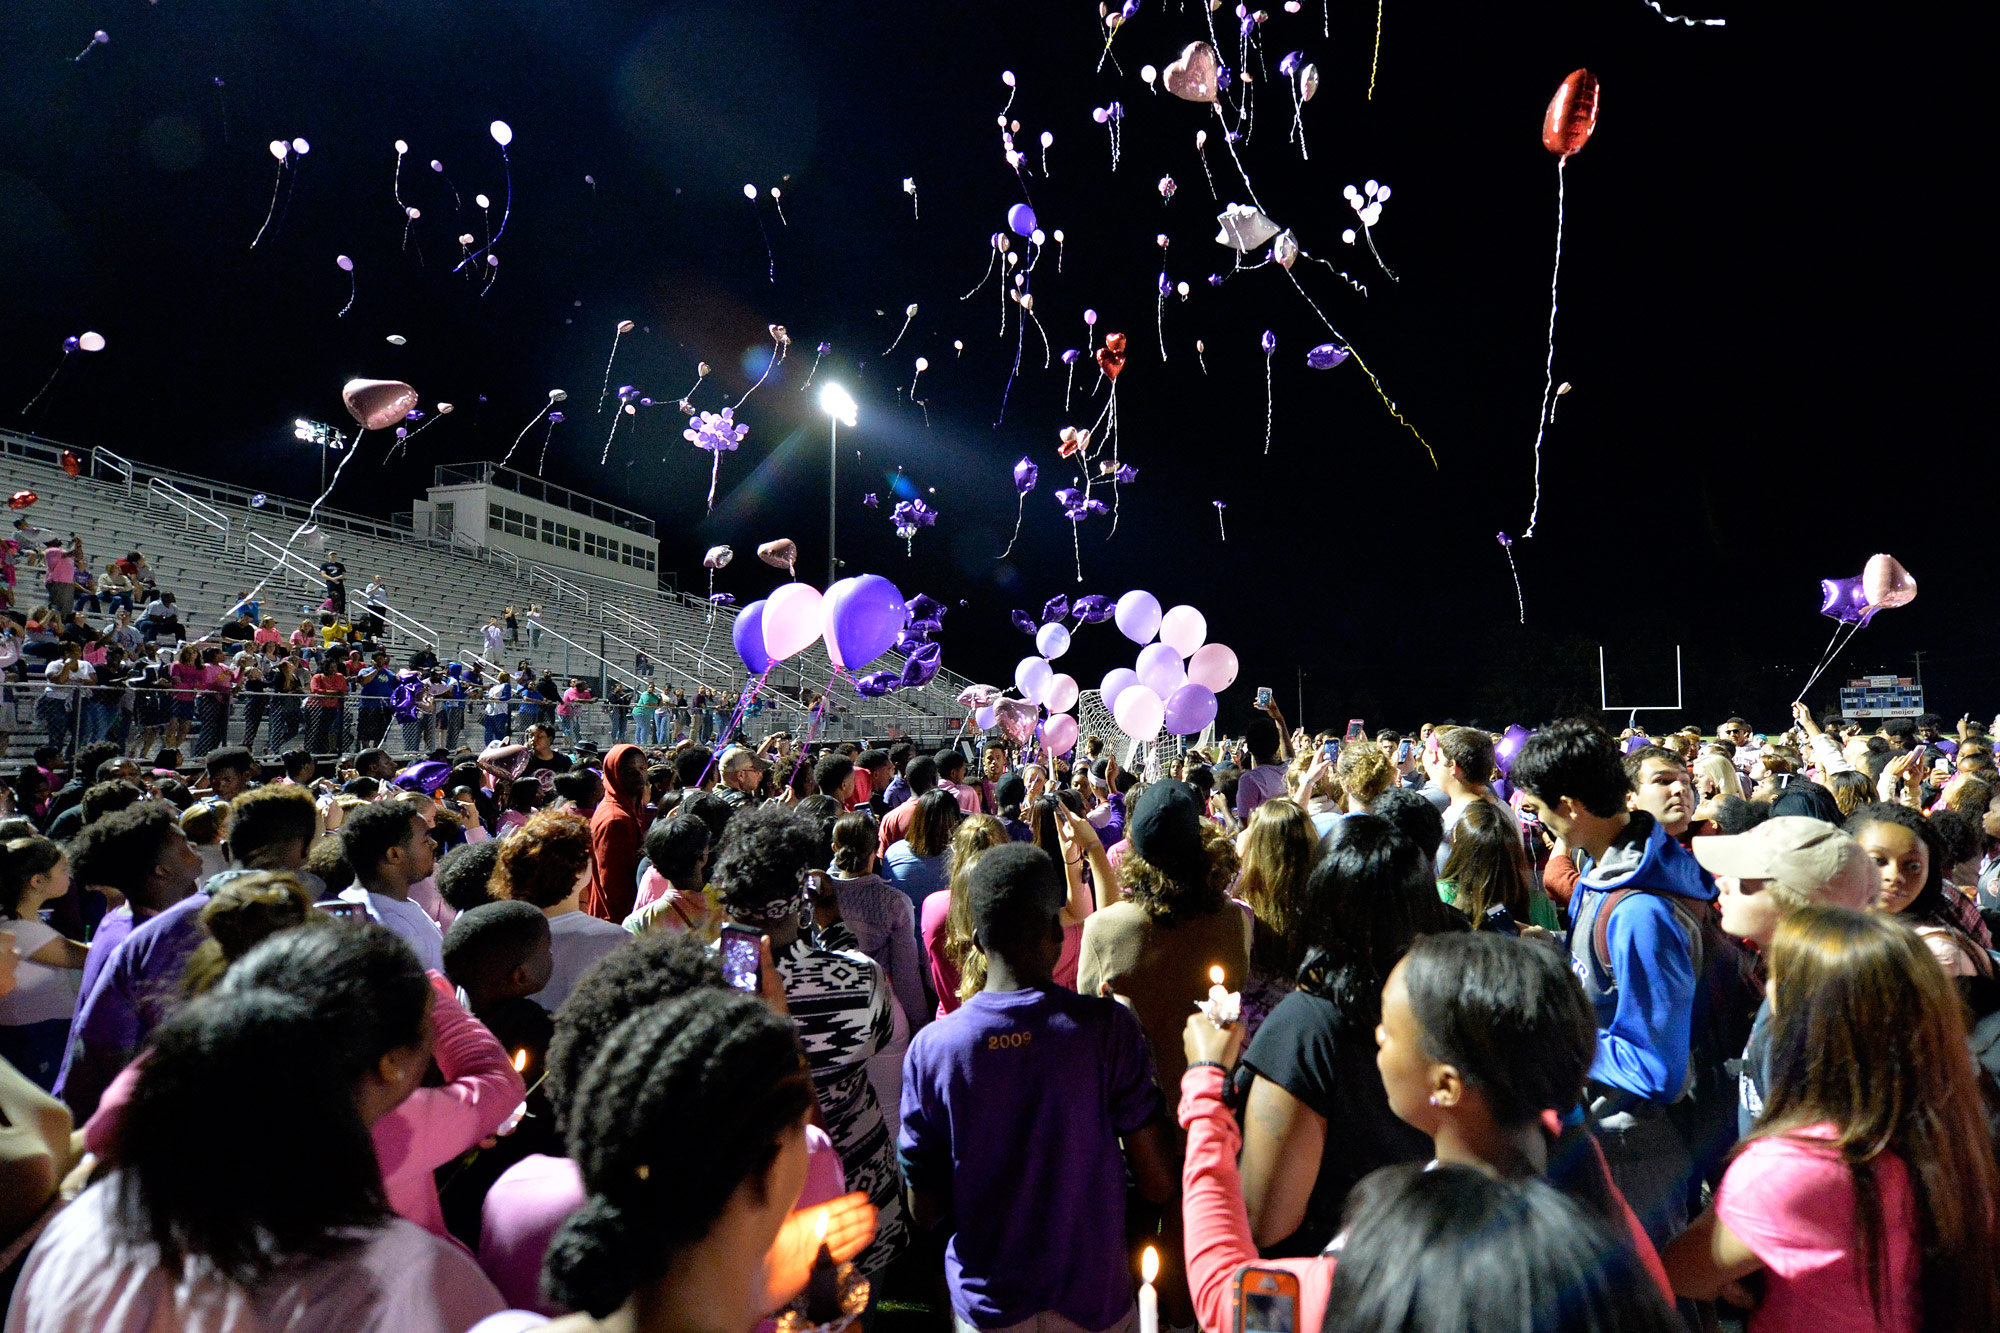 Classmates of Trinity Gay release balloons in her favorite colors in her memory at Lafayette High School, Monday, Oct. 17, 2016, in Lexington, Ky. Several thousand people, including Tyson Gay, turned out Monday night for a candlelight vigil in Kentucky to honor Gay's 15-year-old daughter, Trinity, who was fatally shot over the weekend.